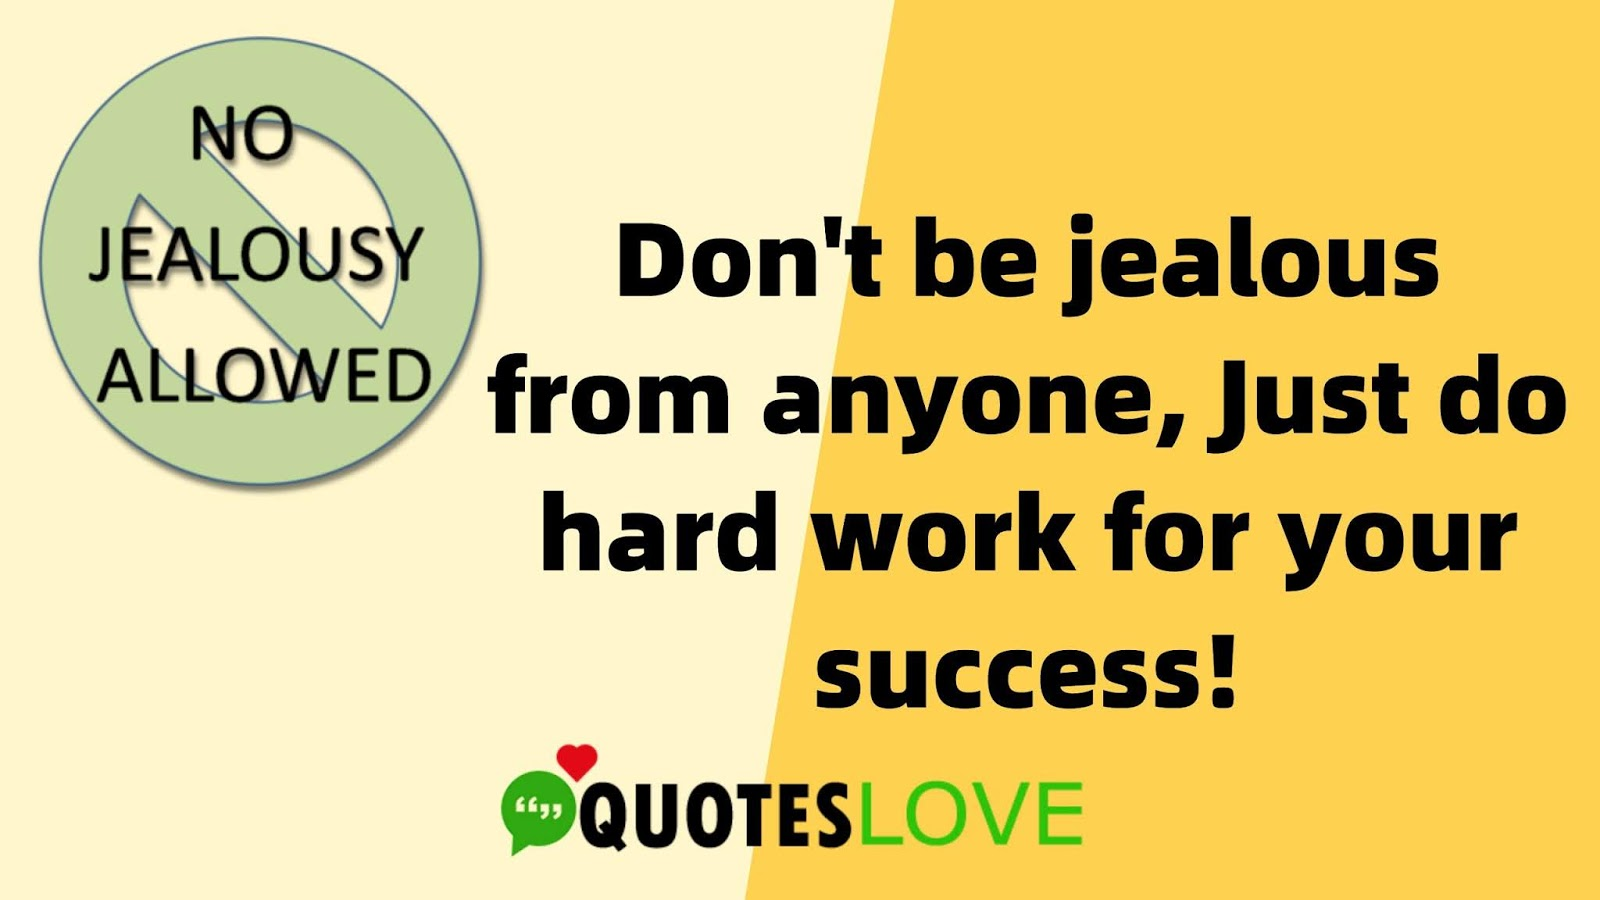 Don't be jealous from anyone, Just do hard work for your success!